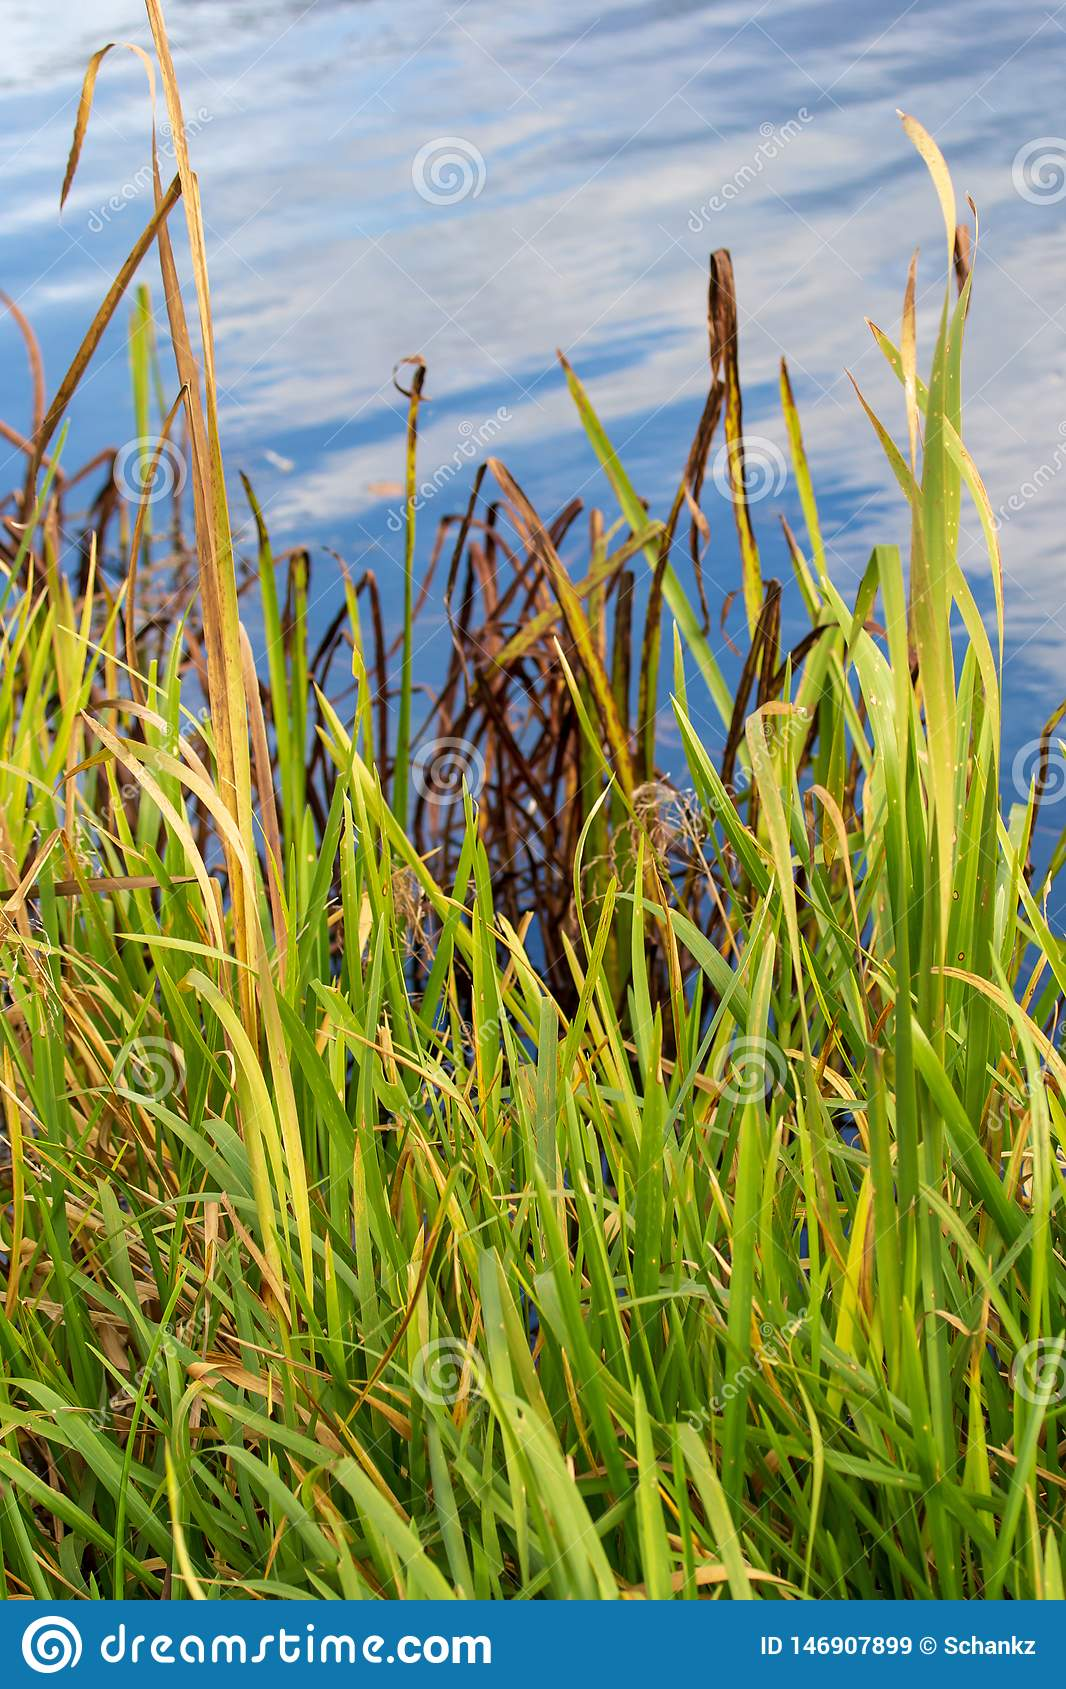 Reed grows on a pond in autumn